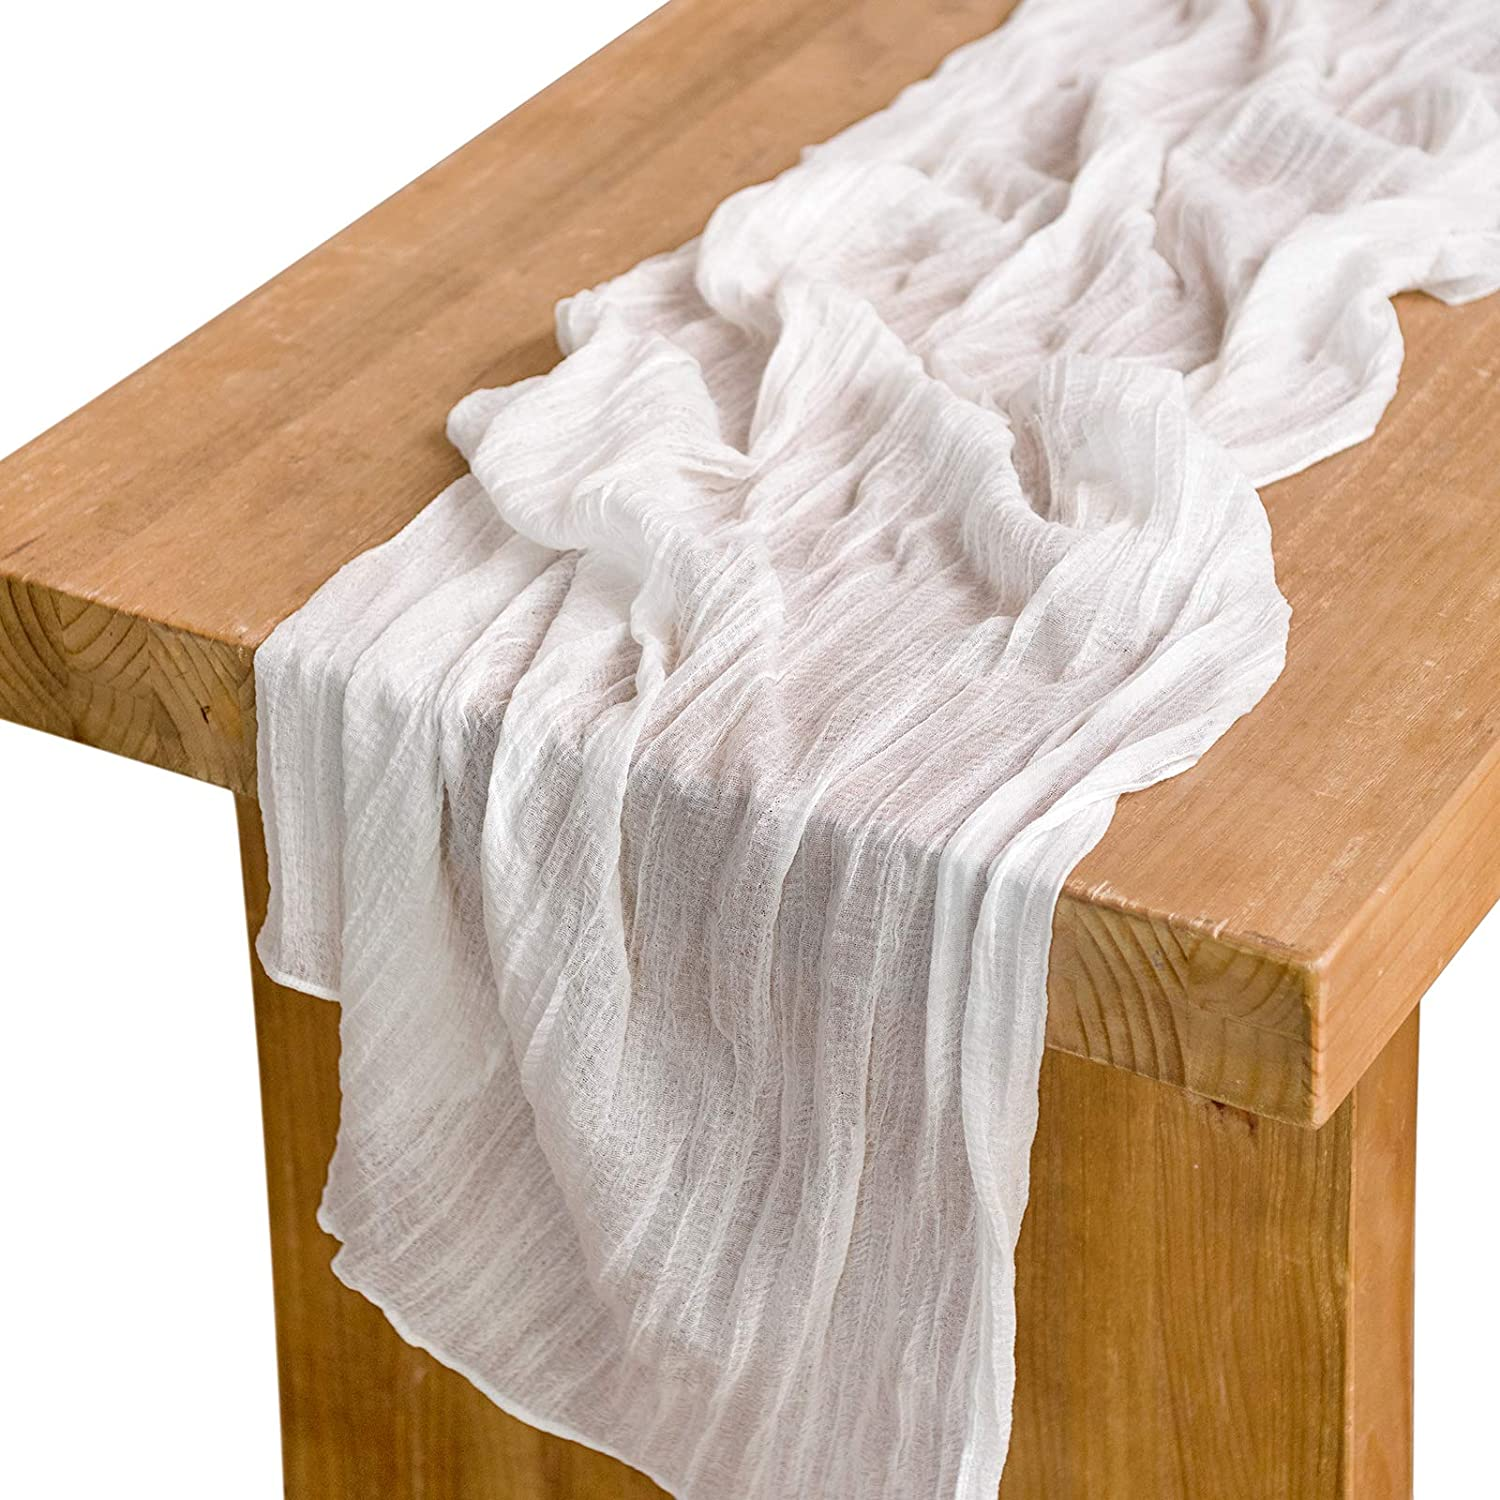 "Ling's moment 10ft x 35"" Wide White Gauze Semi-Sheer Table Runner Cheesecloth Tablecloth for Wedding Party Bridal Shower Table Centerpieces Decor"